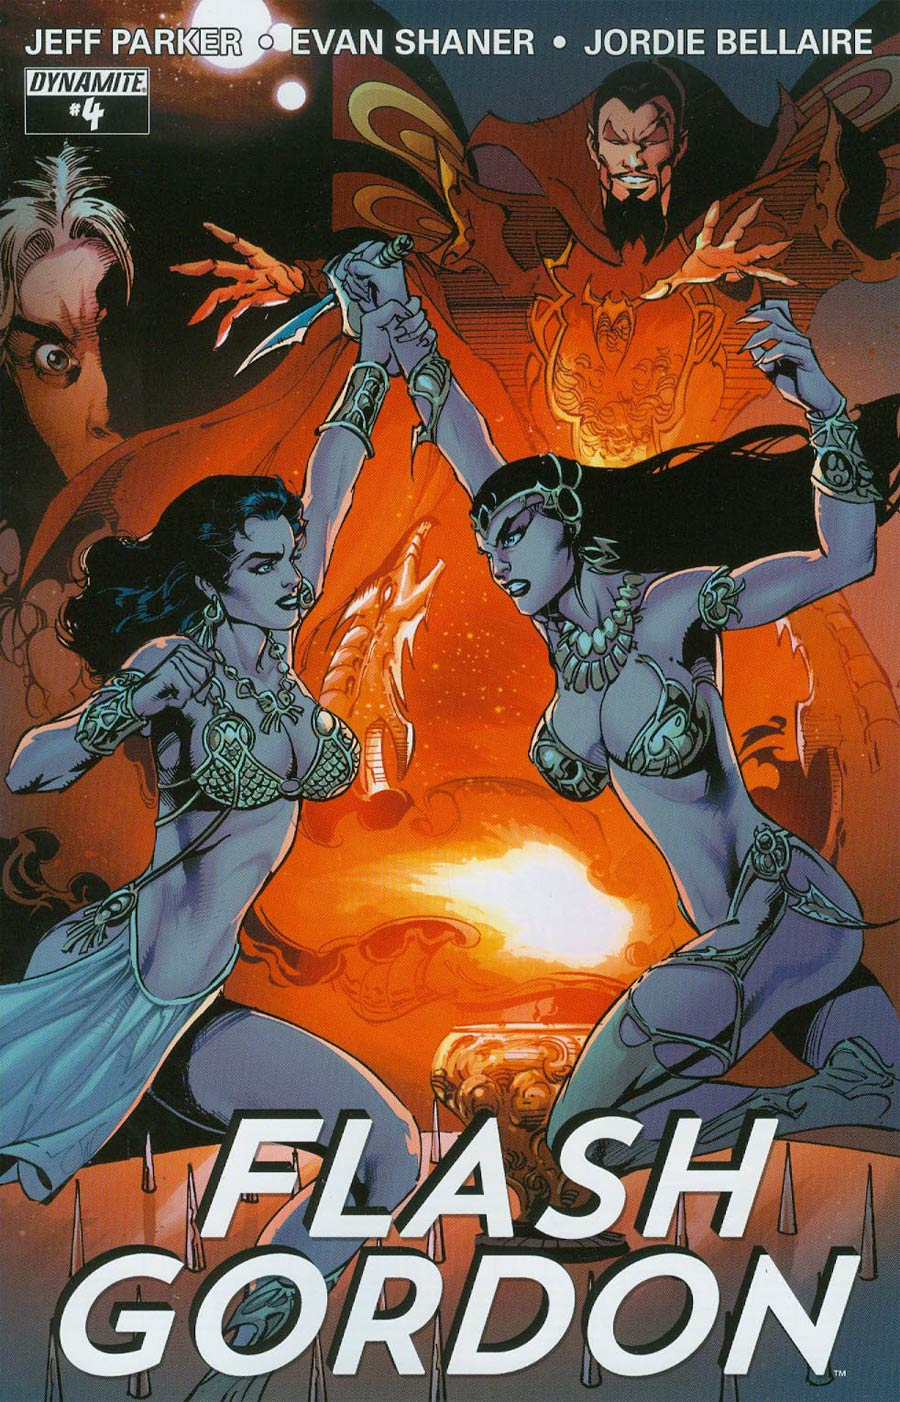 Flash Gordon Vol 7 #4 Cover C Variant Roberto Castro 80th Anniversary Cover